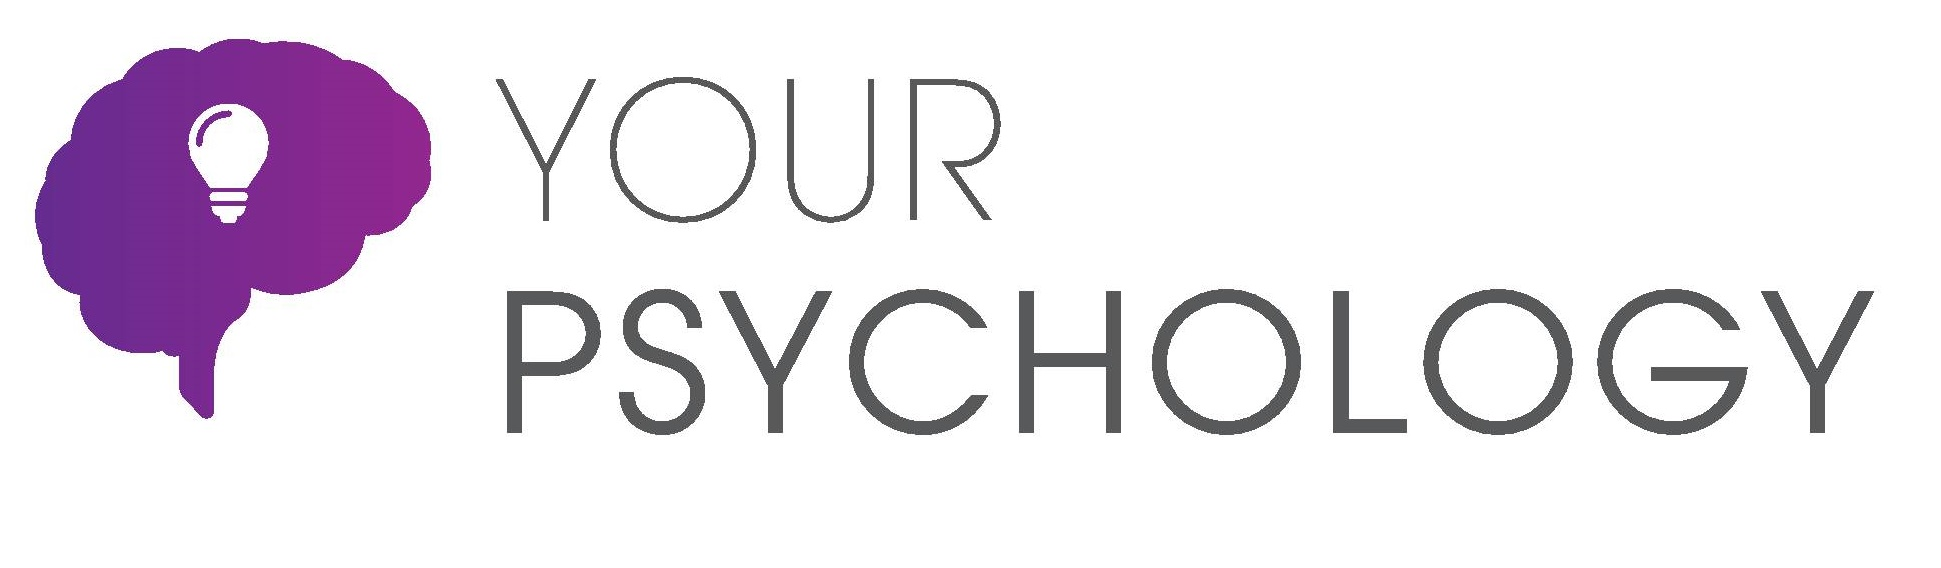 Your Psychology Service